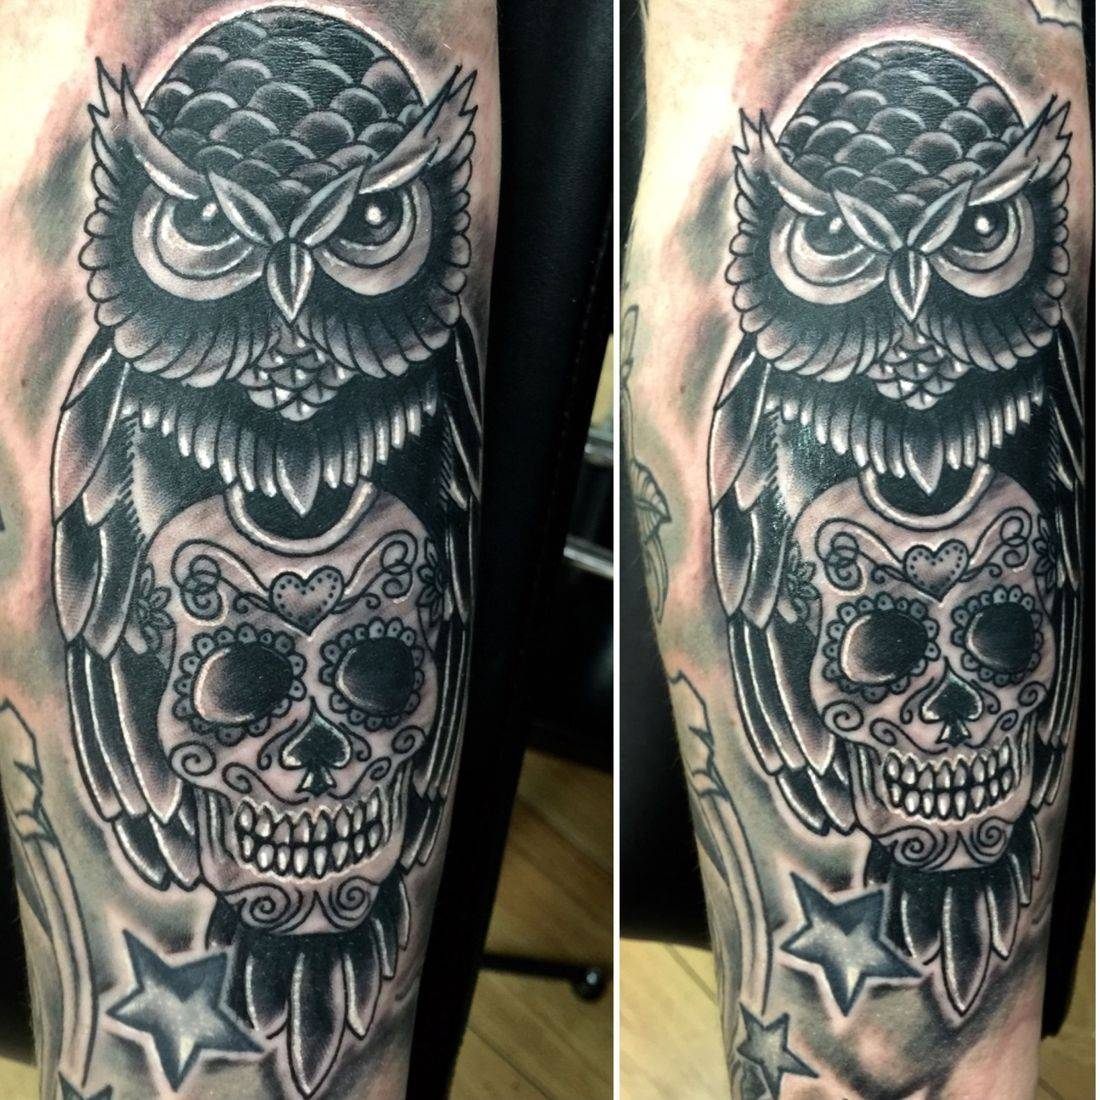 Owl and Skull tattoo by mcgoldtooth at Kazbah Leicester City Centre